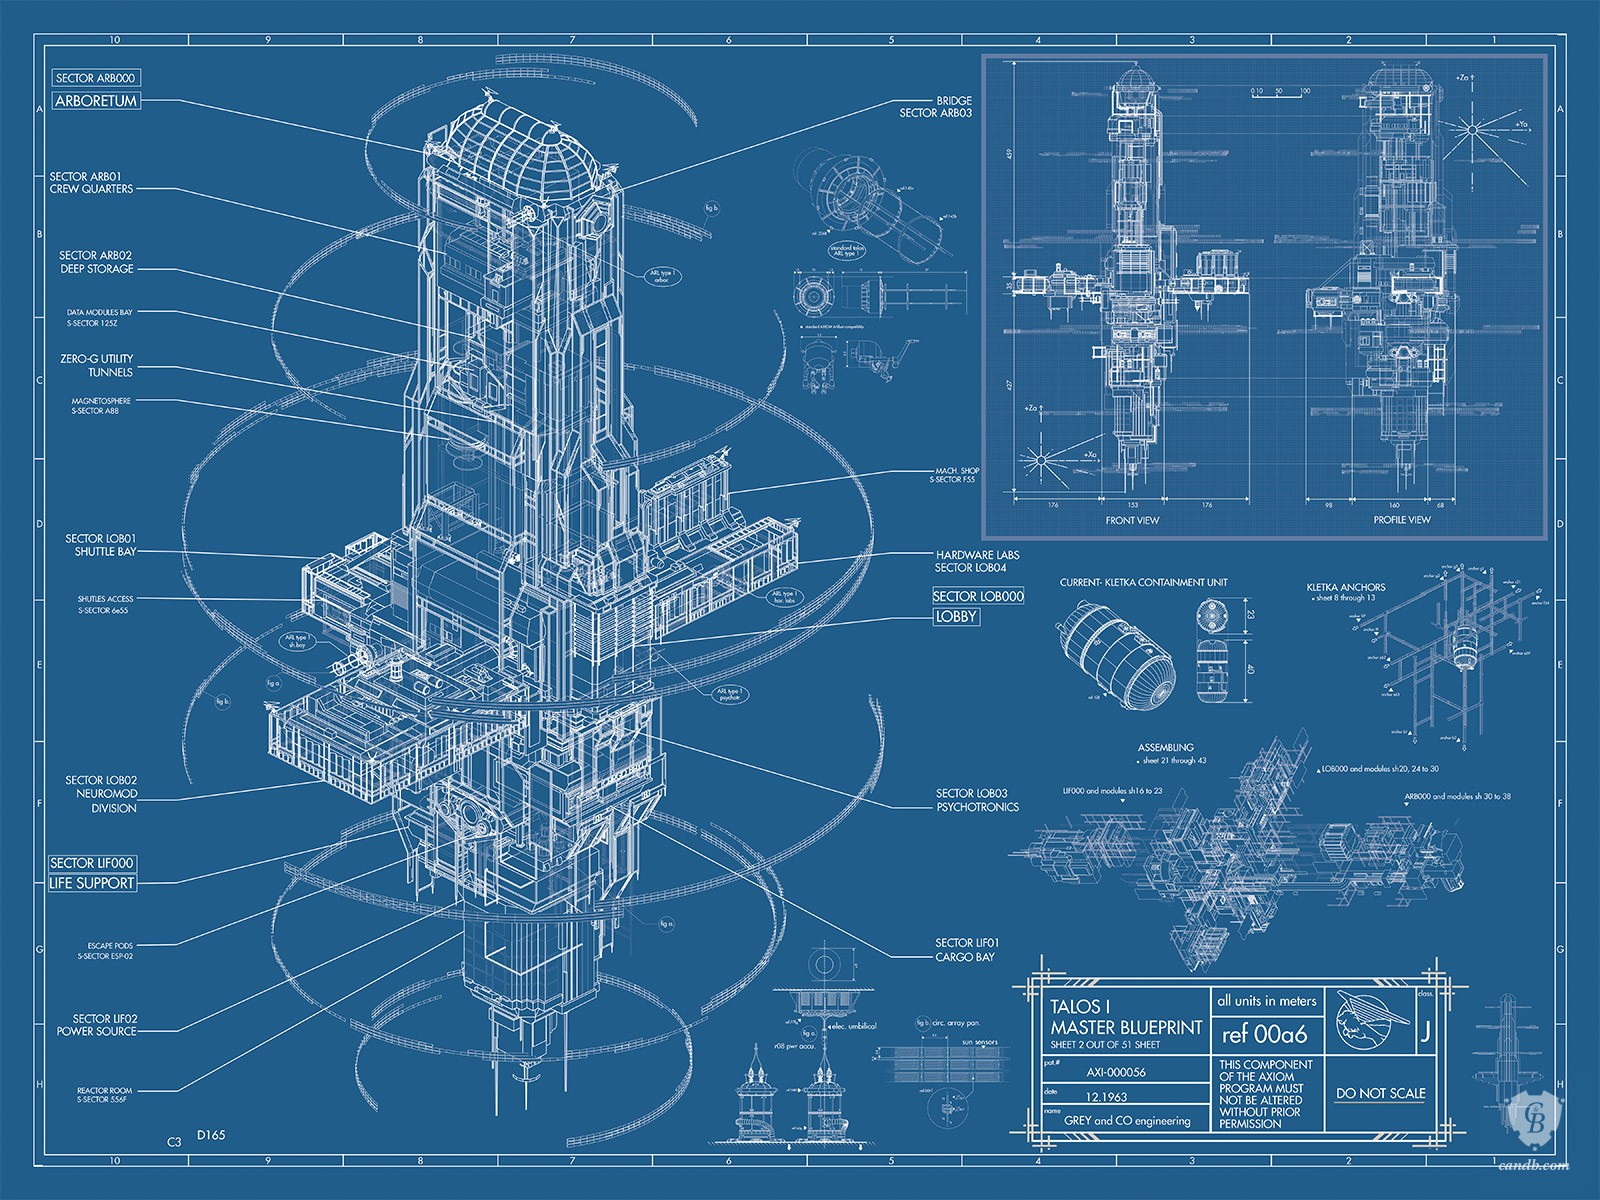 Artwork talos i master blueprint prey arkane studios for Blueprints website